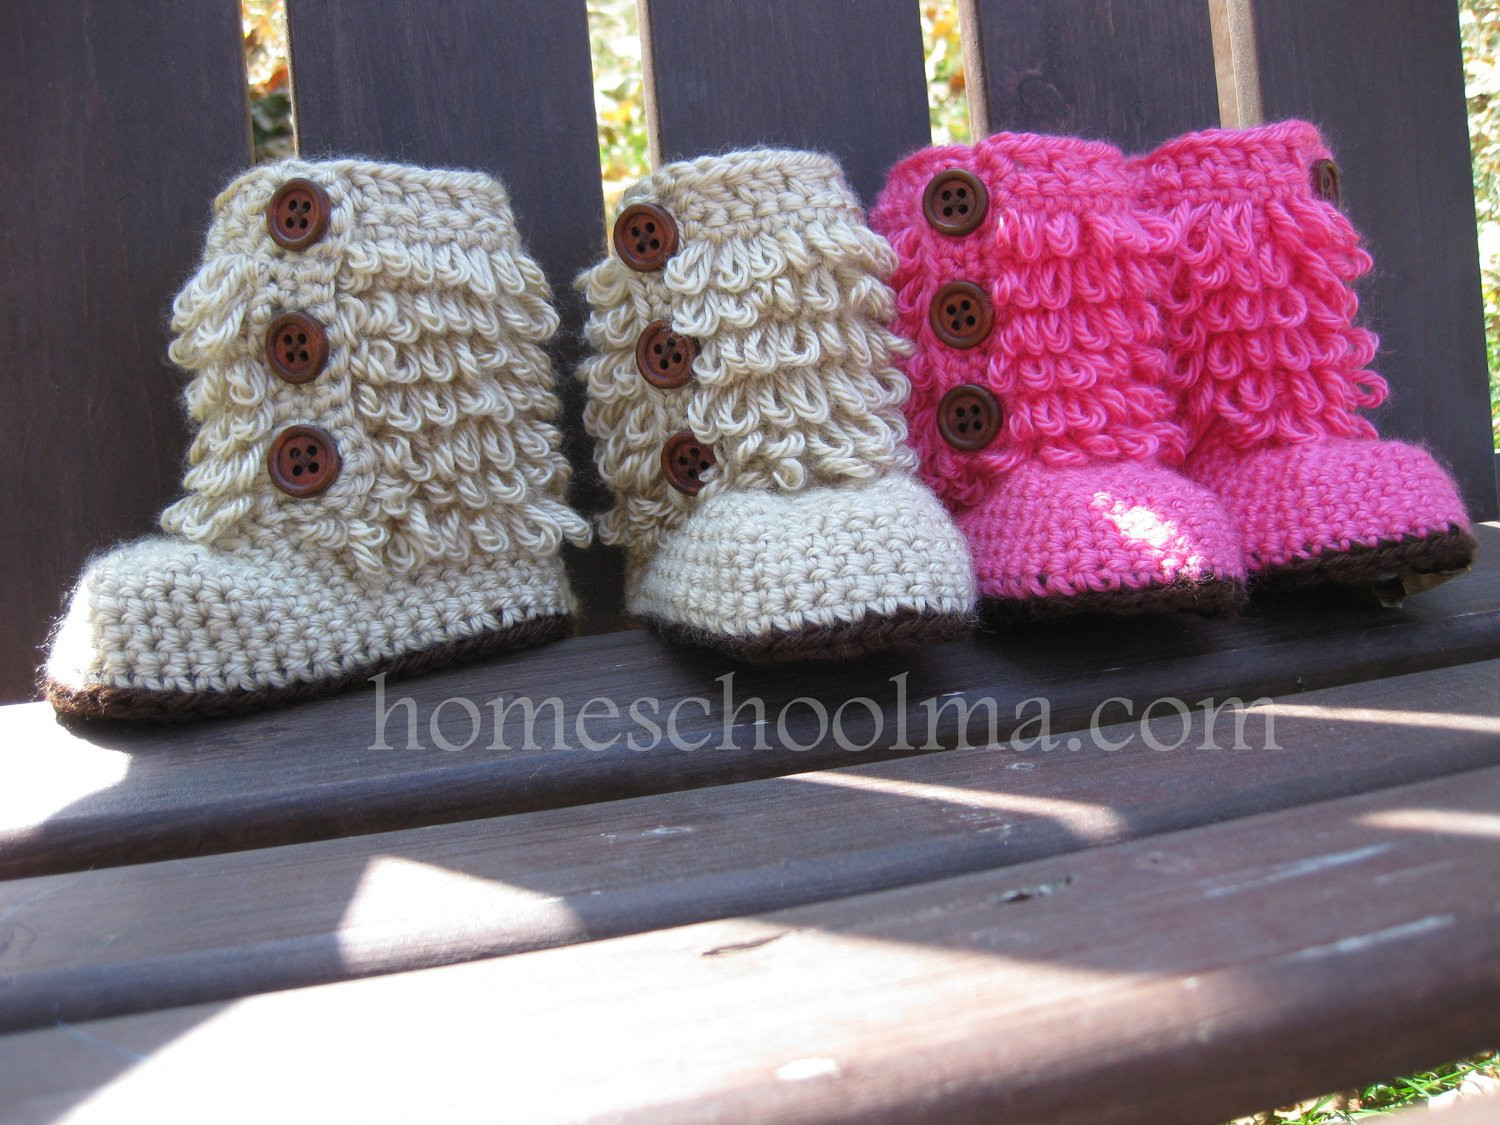 Ugh Crochet Boots Unique Crochet Baby Ugg Inspired Boots Hot Pink Oatmeal Of Charming 49 Models Ugh Crochet Boots